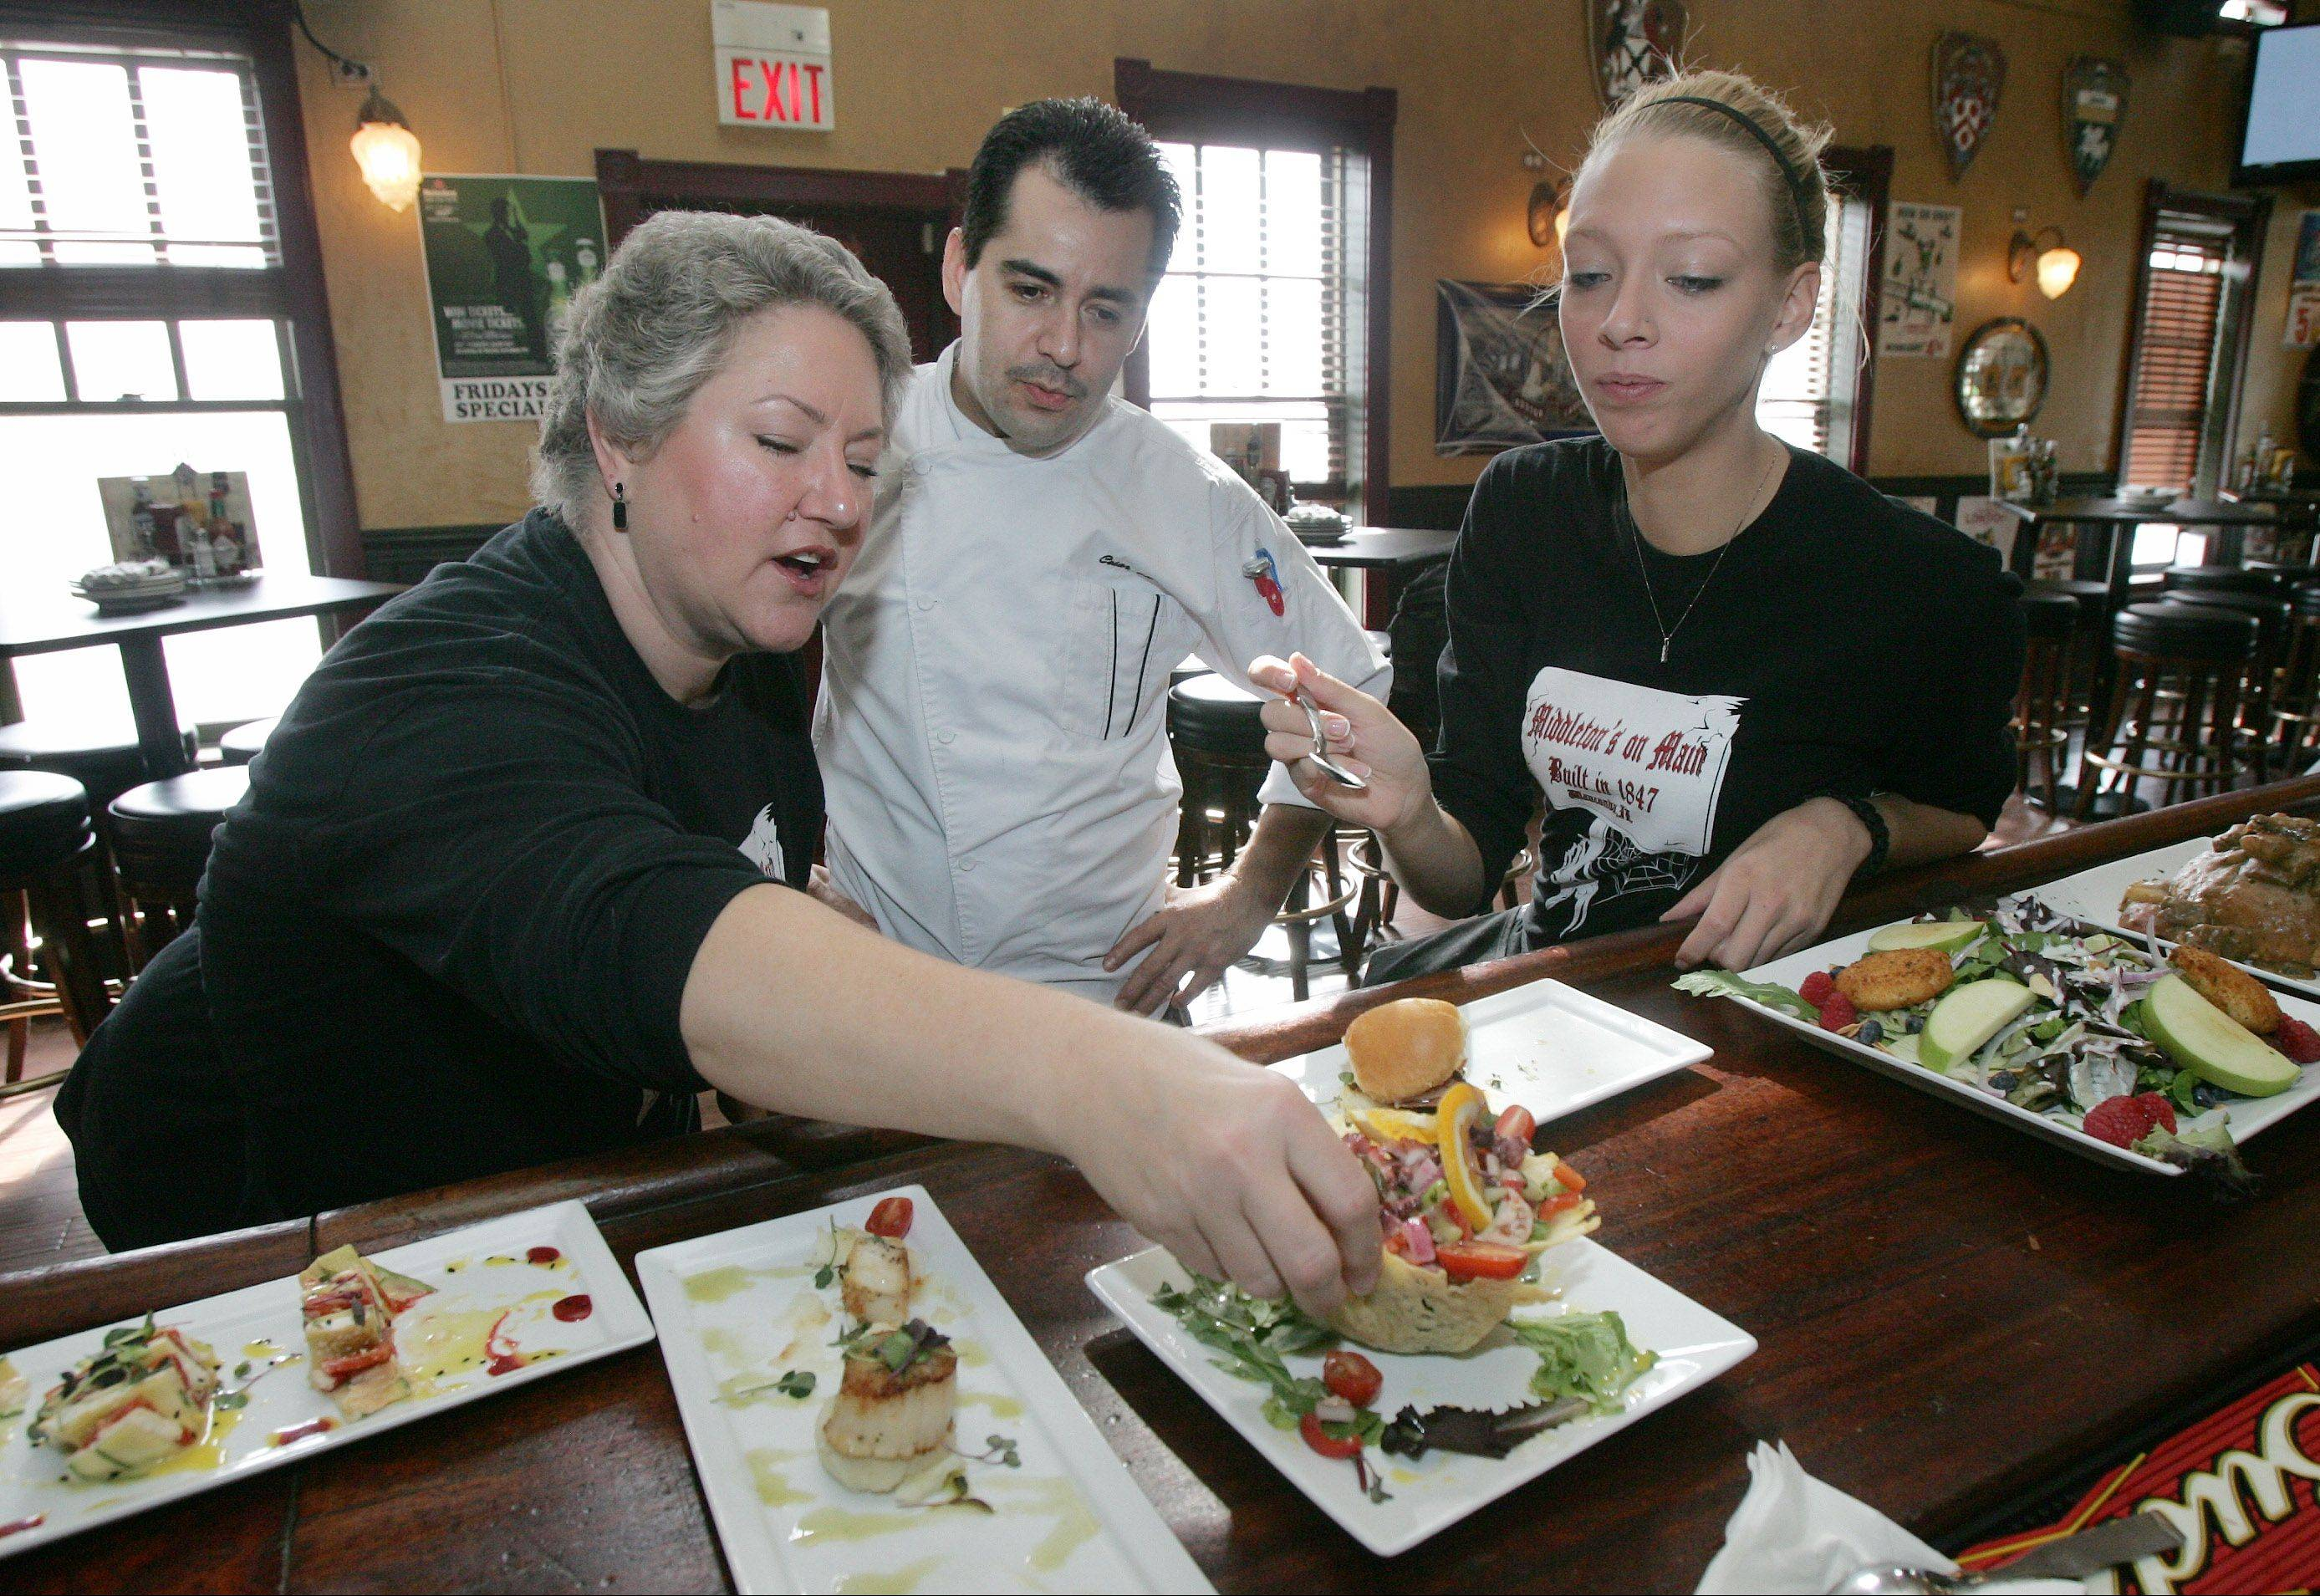 Servers Marcia Lecheler, left, and Chelsea Hanson sample tapas created by Chef Cesar Herrera, center, before lunch at Middleton's On Main restaurant in Wauconda.